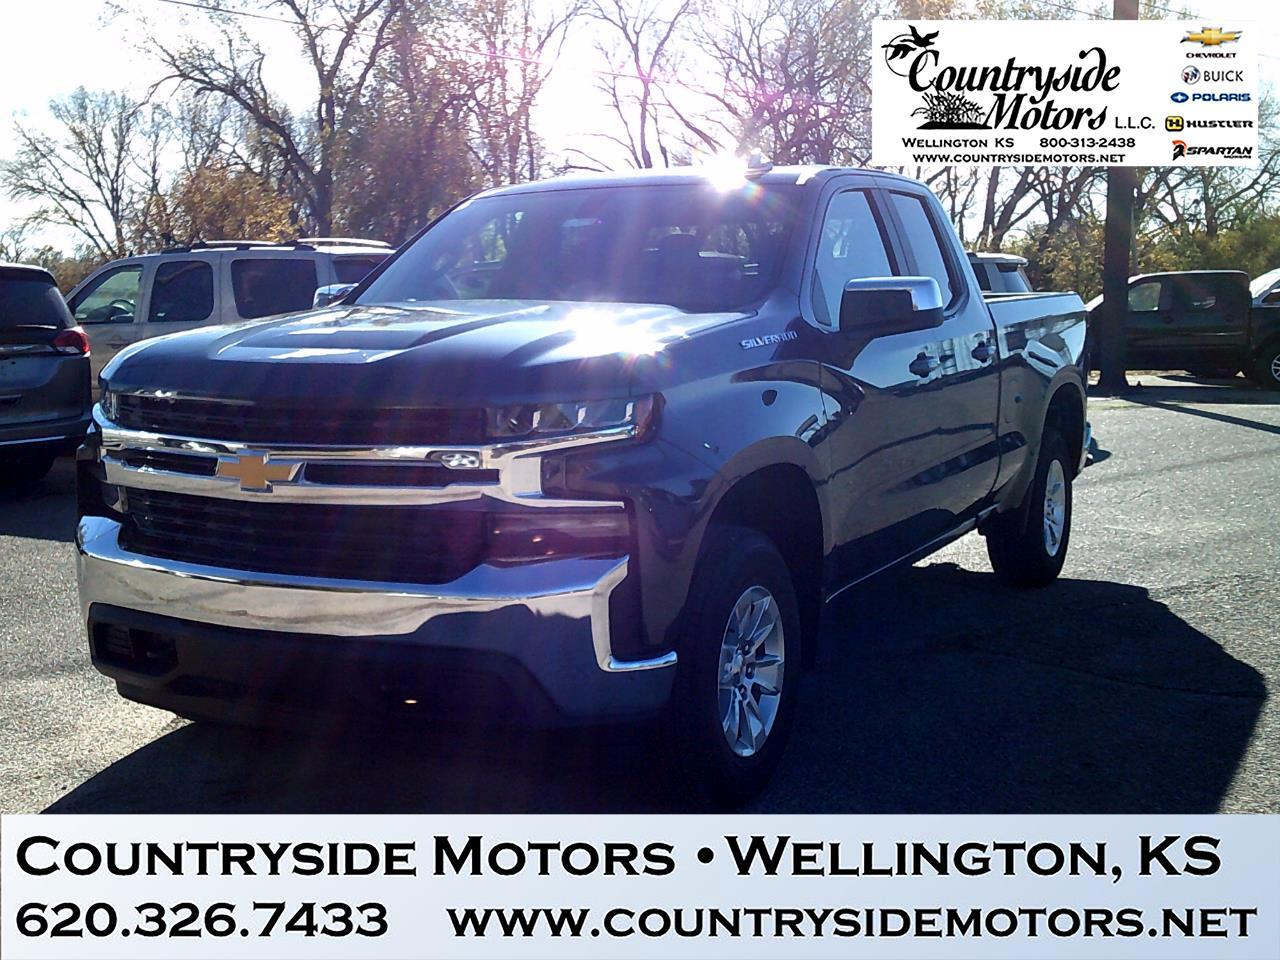 2019 Chevrolet Silverado 1500 1500 4WD Double Cab LT All Star Edition